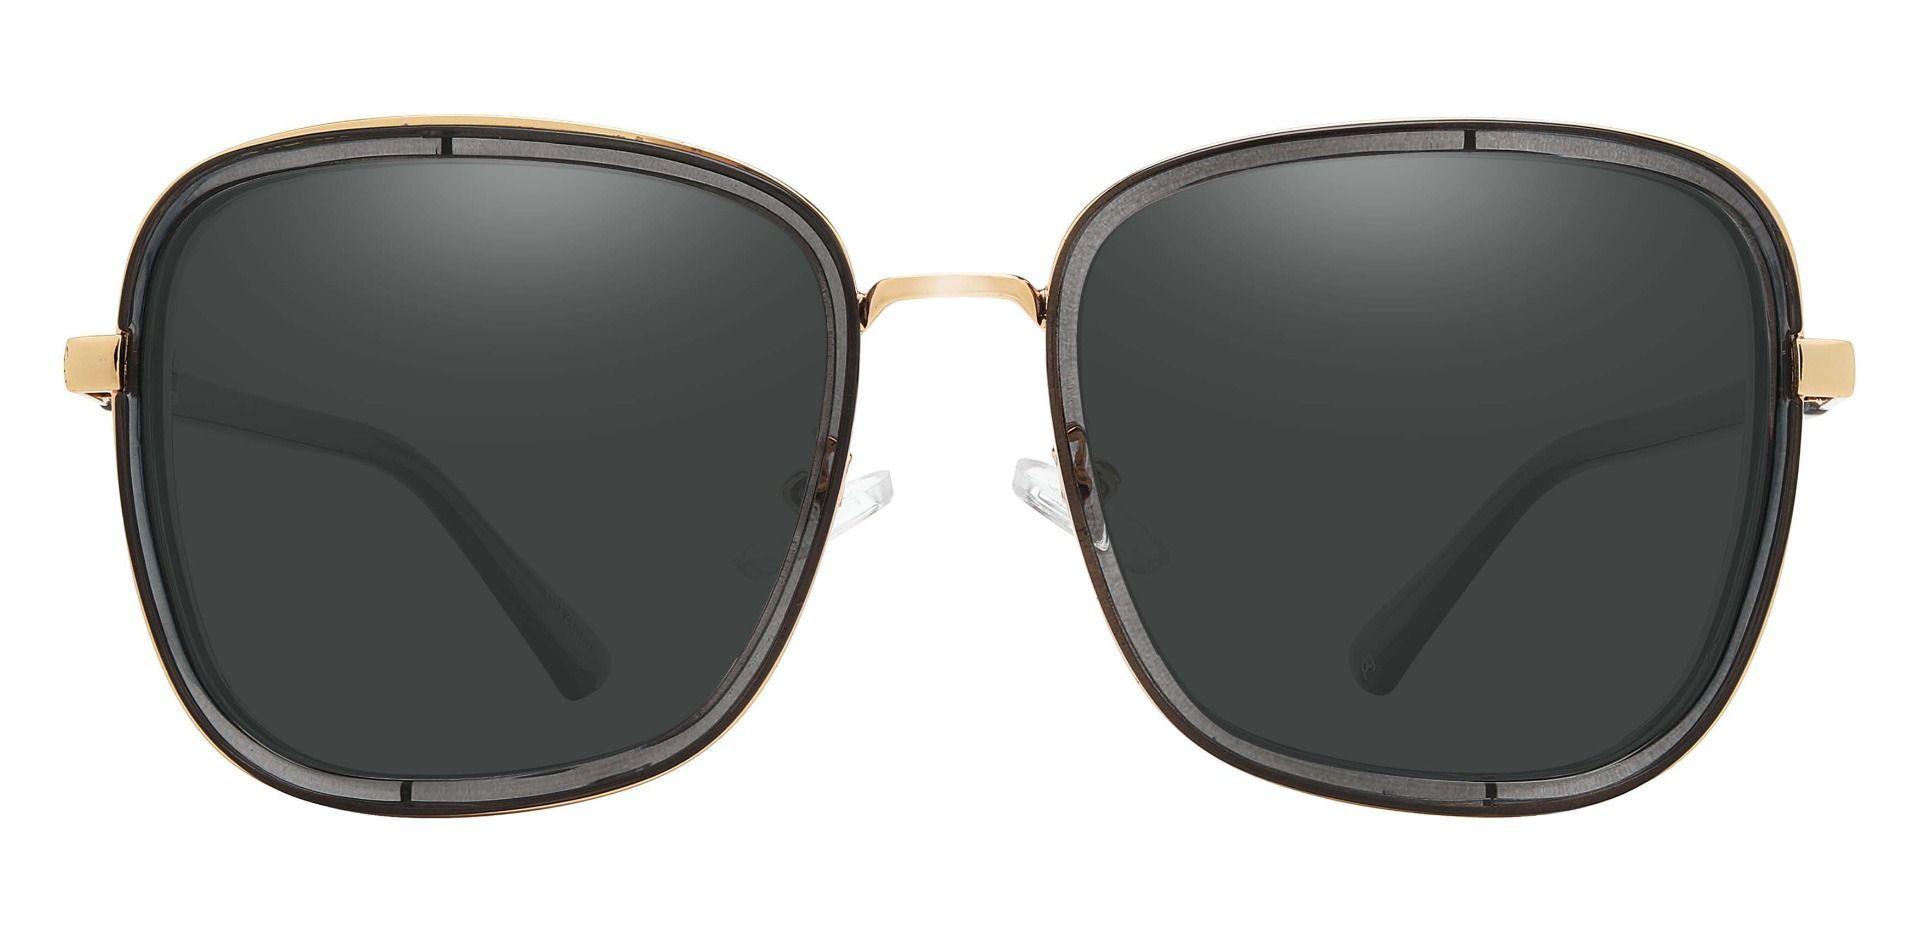 Shimmer Square Non-Rx Sunglasses - Gray Frame With Gray Lenses